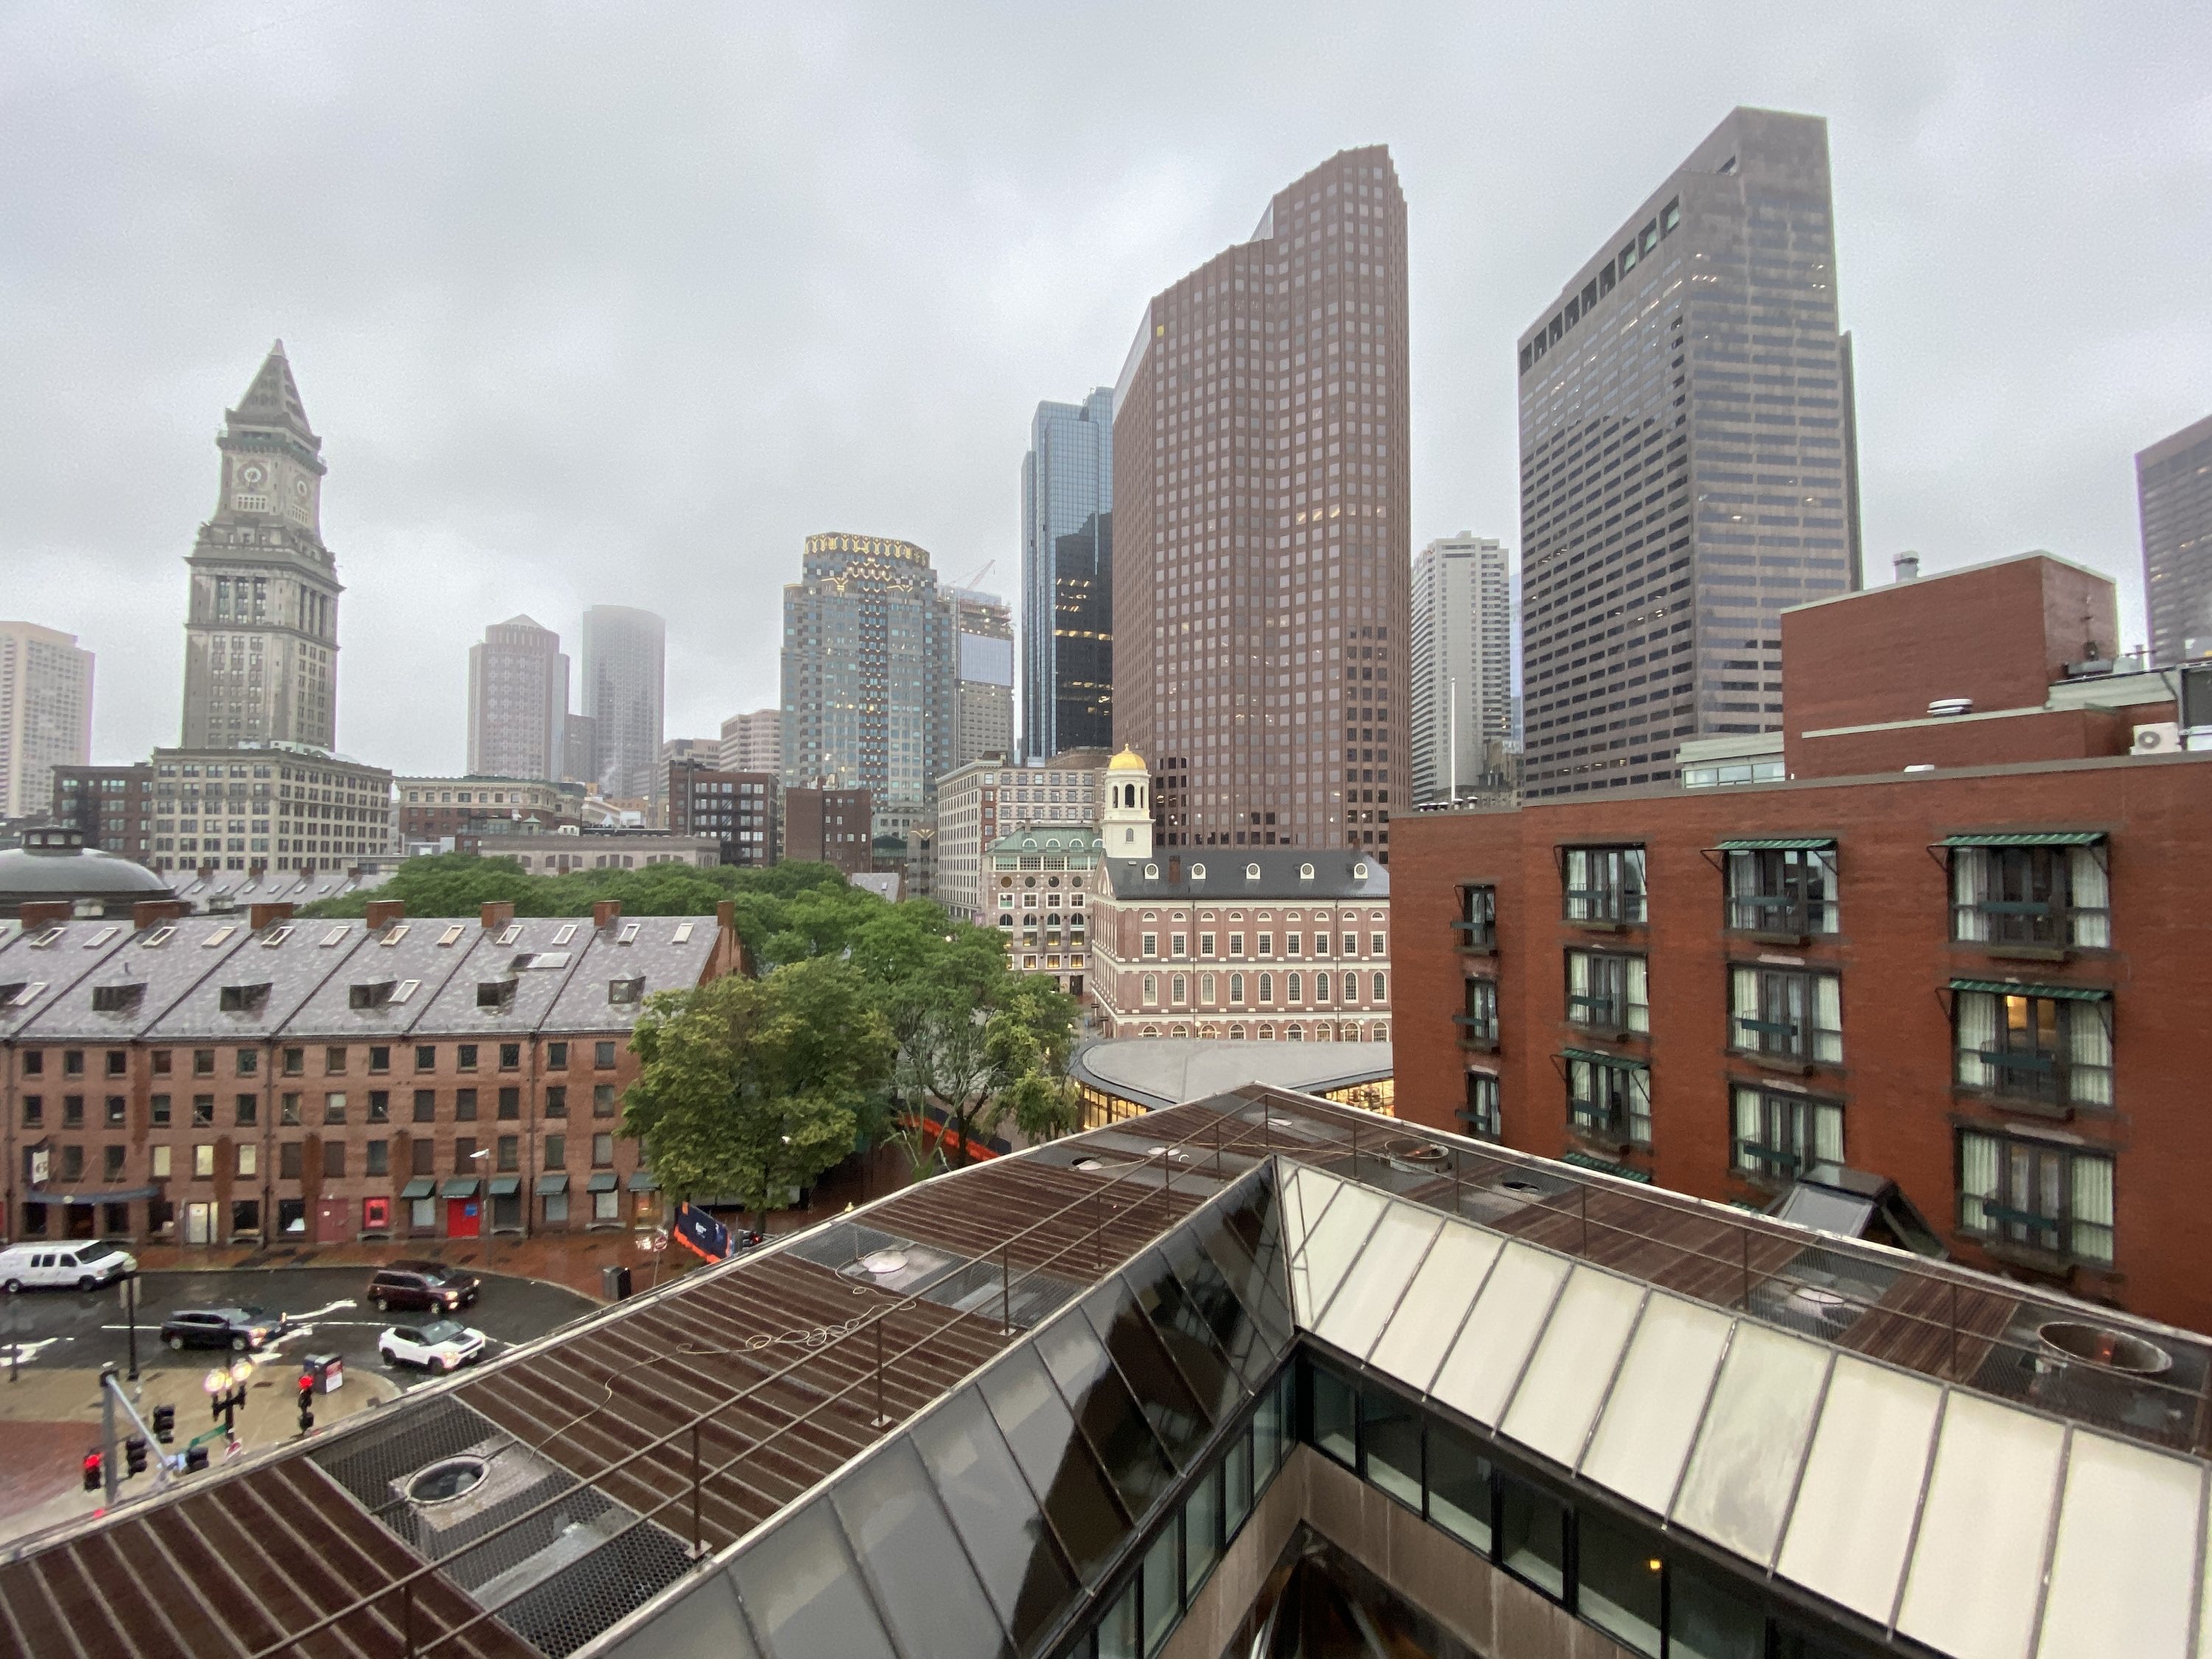 Our downtown view